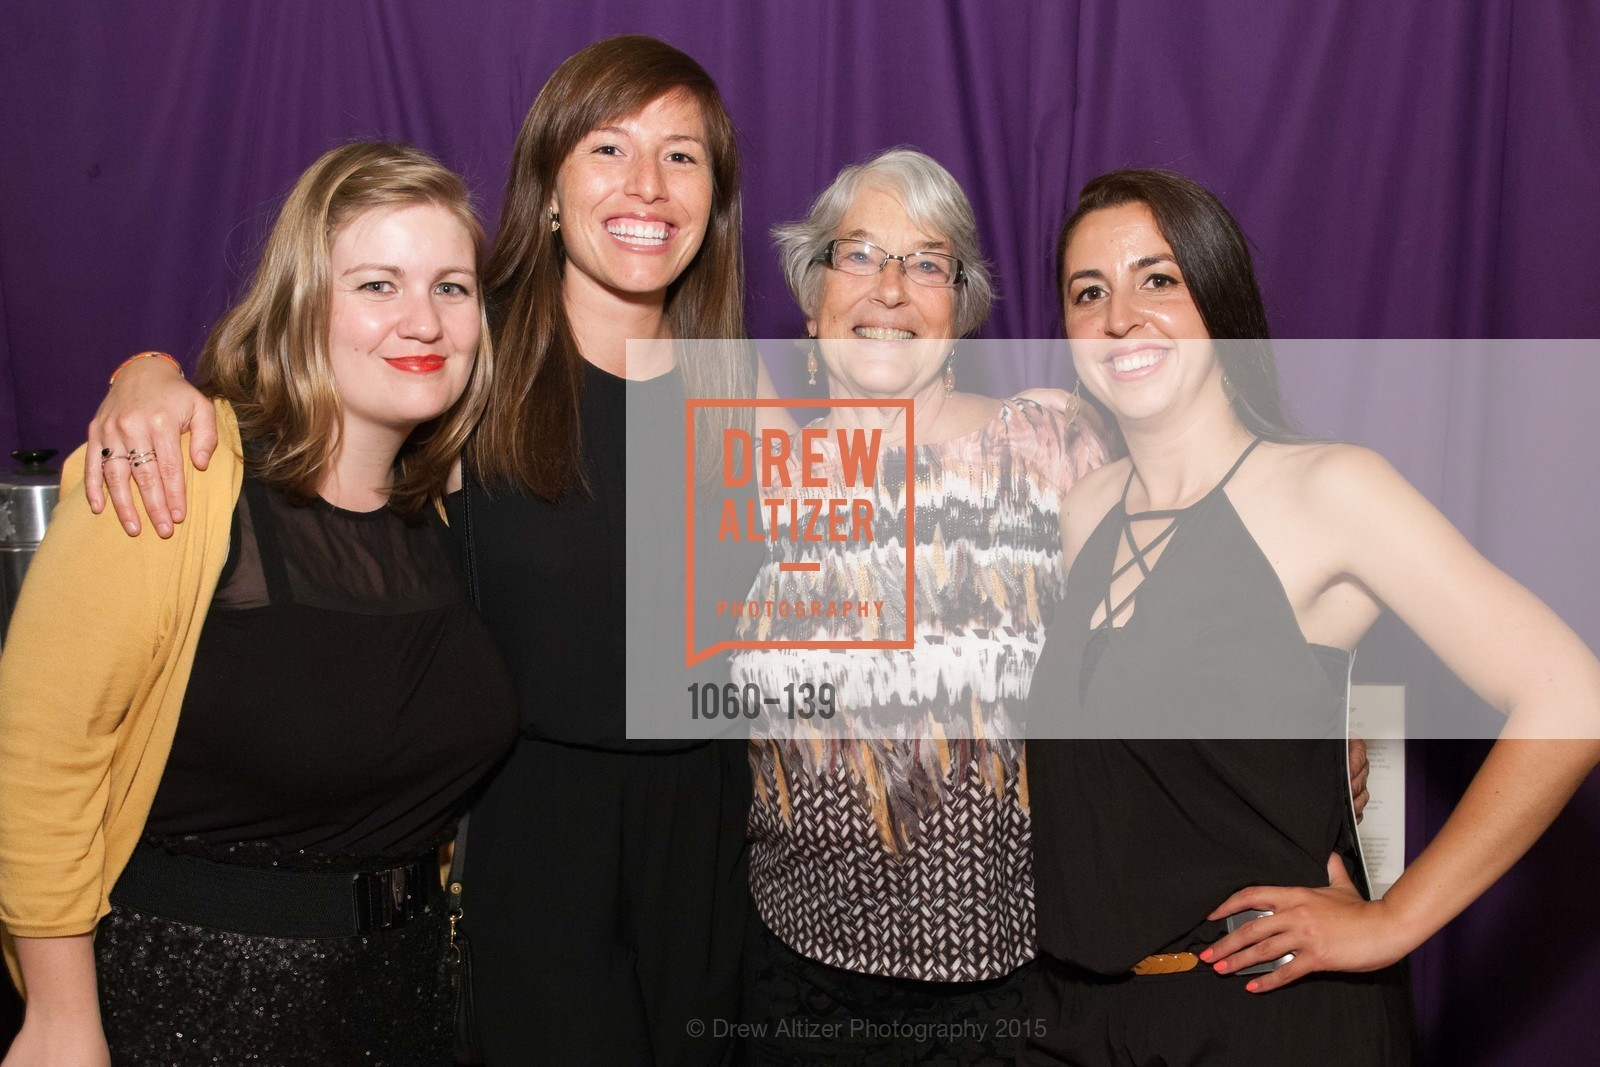 Lauren Via, Nancy Rapir, Jen Greco, Homeless Prenatal Program Our House, Our Mission Gala, 2500 18th St, May 29th, 2015,Drew Altizer, Drew Altizer Photography, full-service agency, private events, San Francisco photographer, photographer california